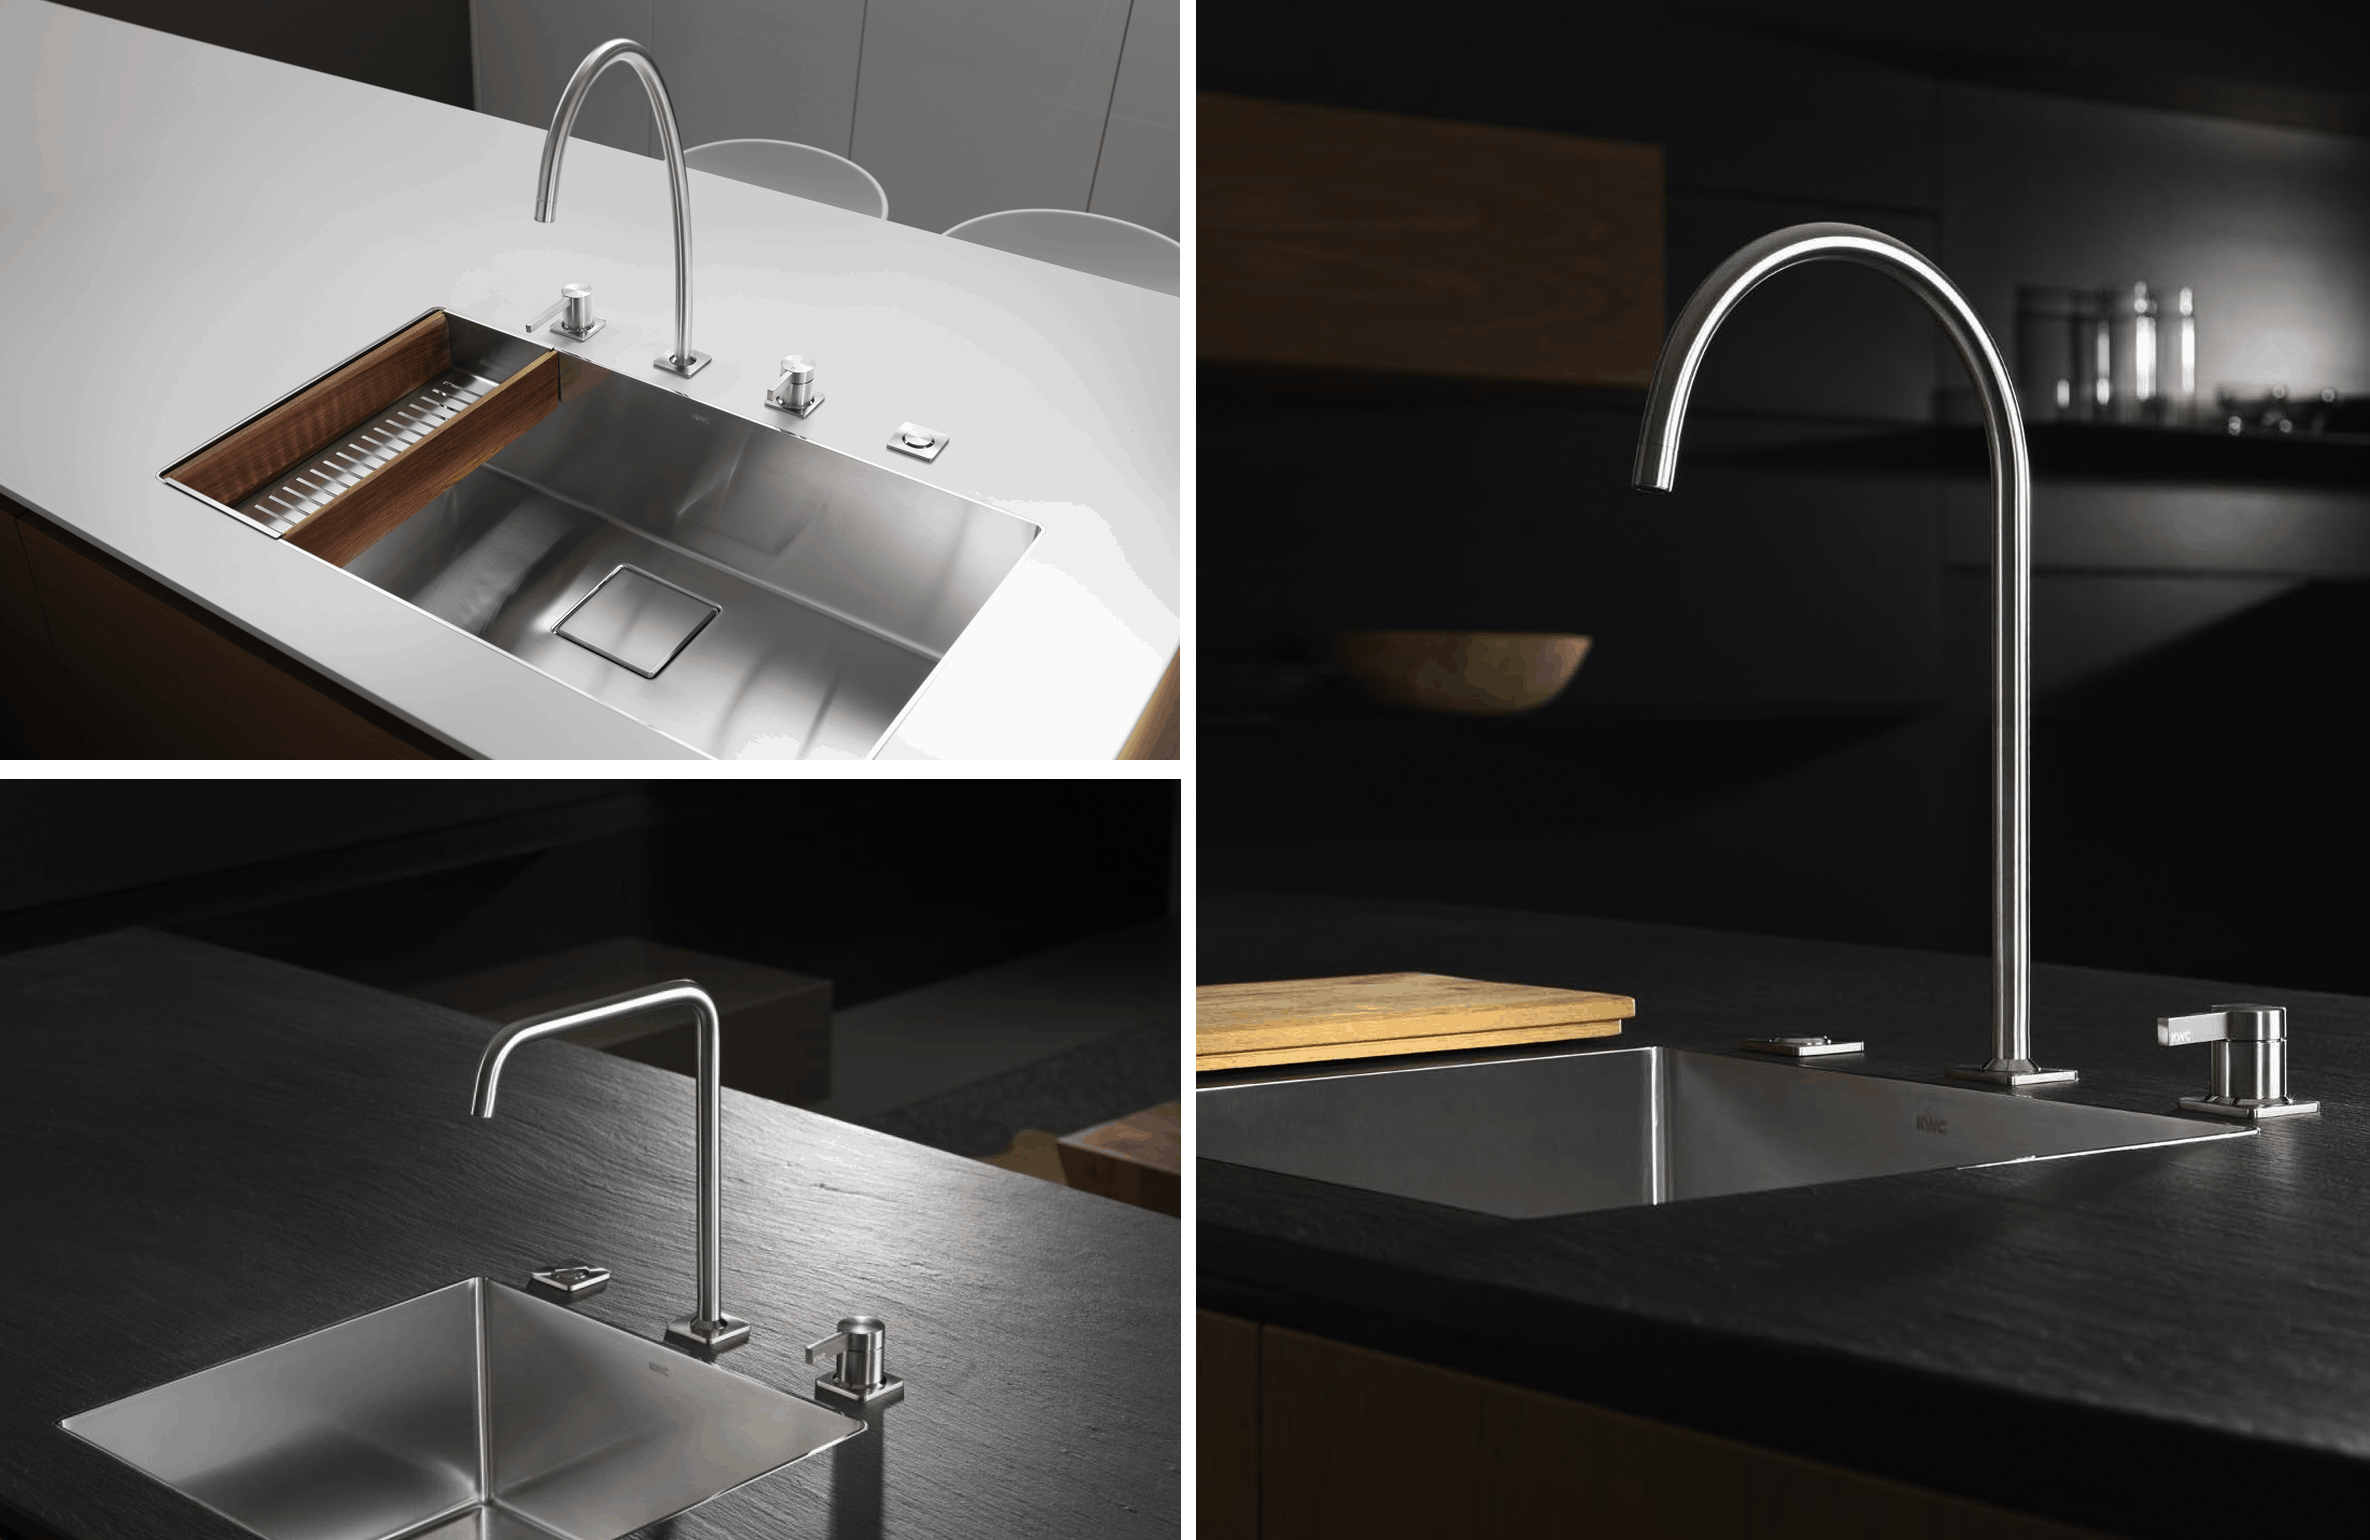 concept us keep kwc designs gallery dan fascinated in faucets faucet noa view